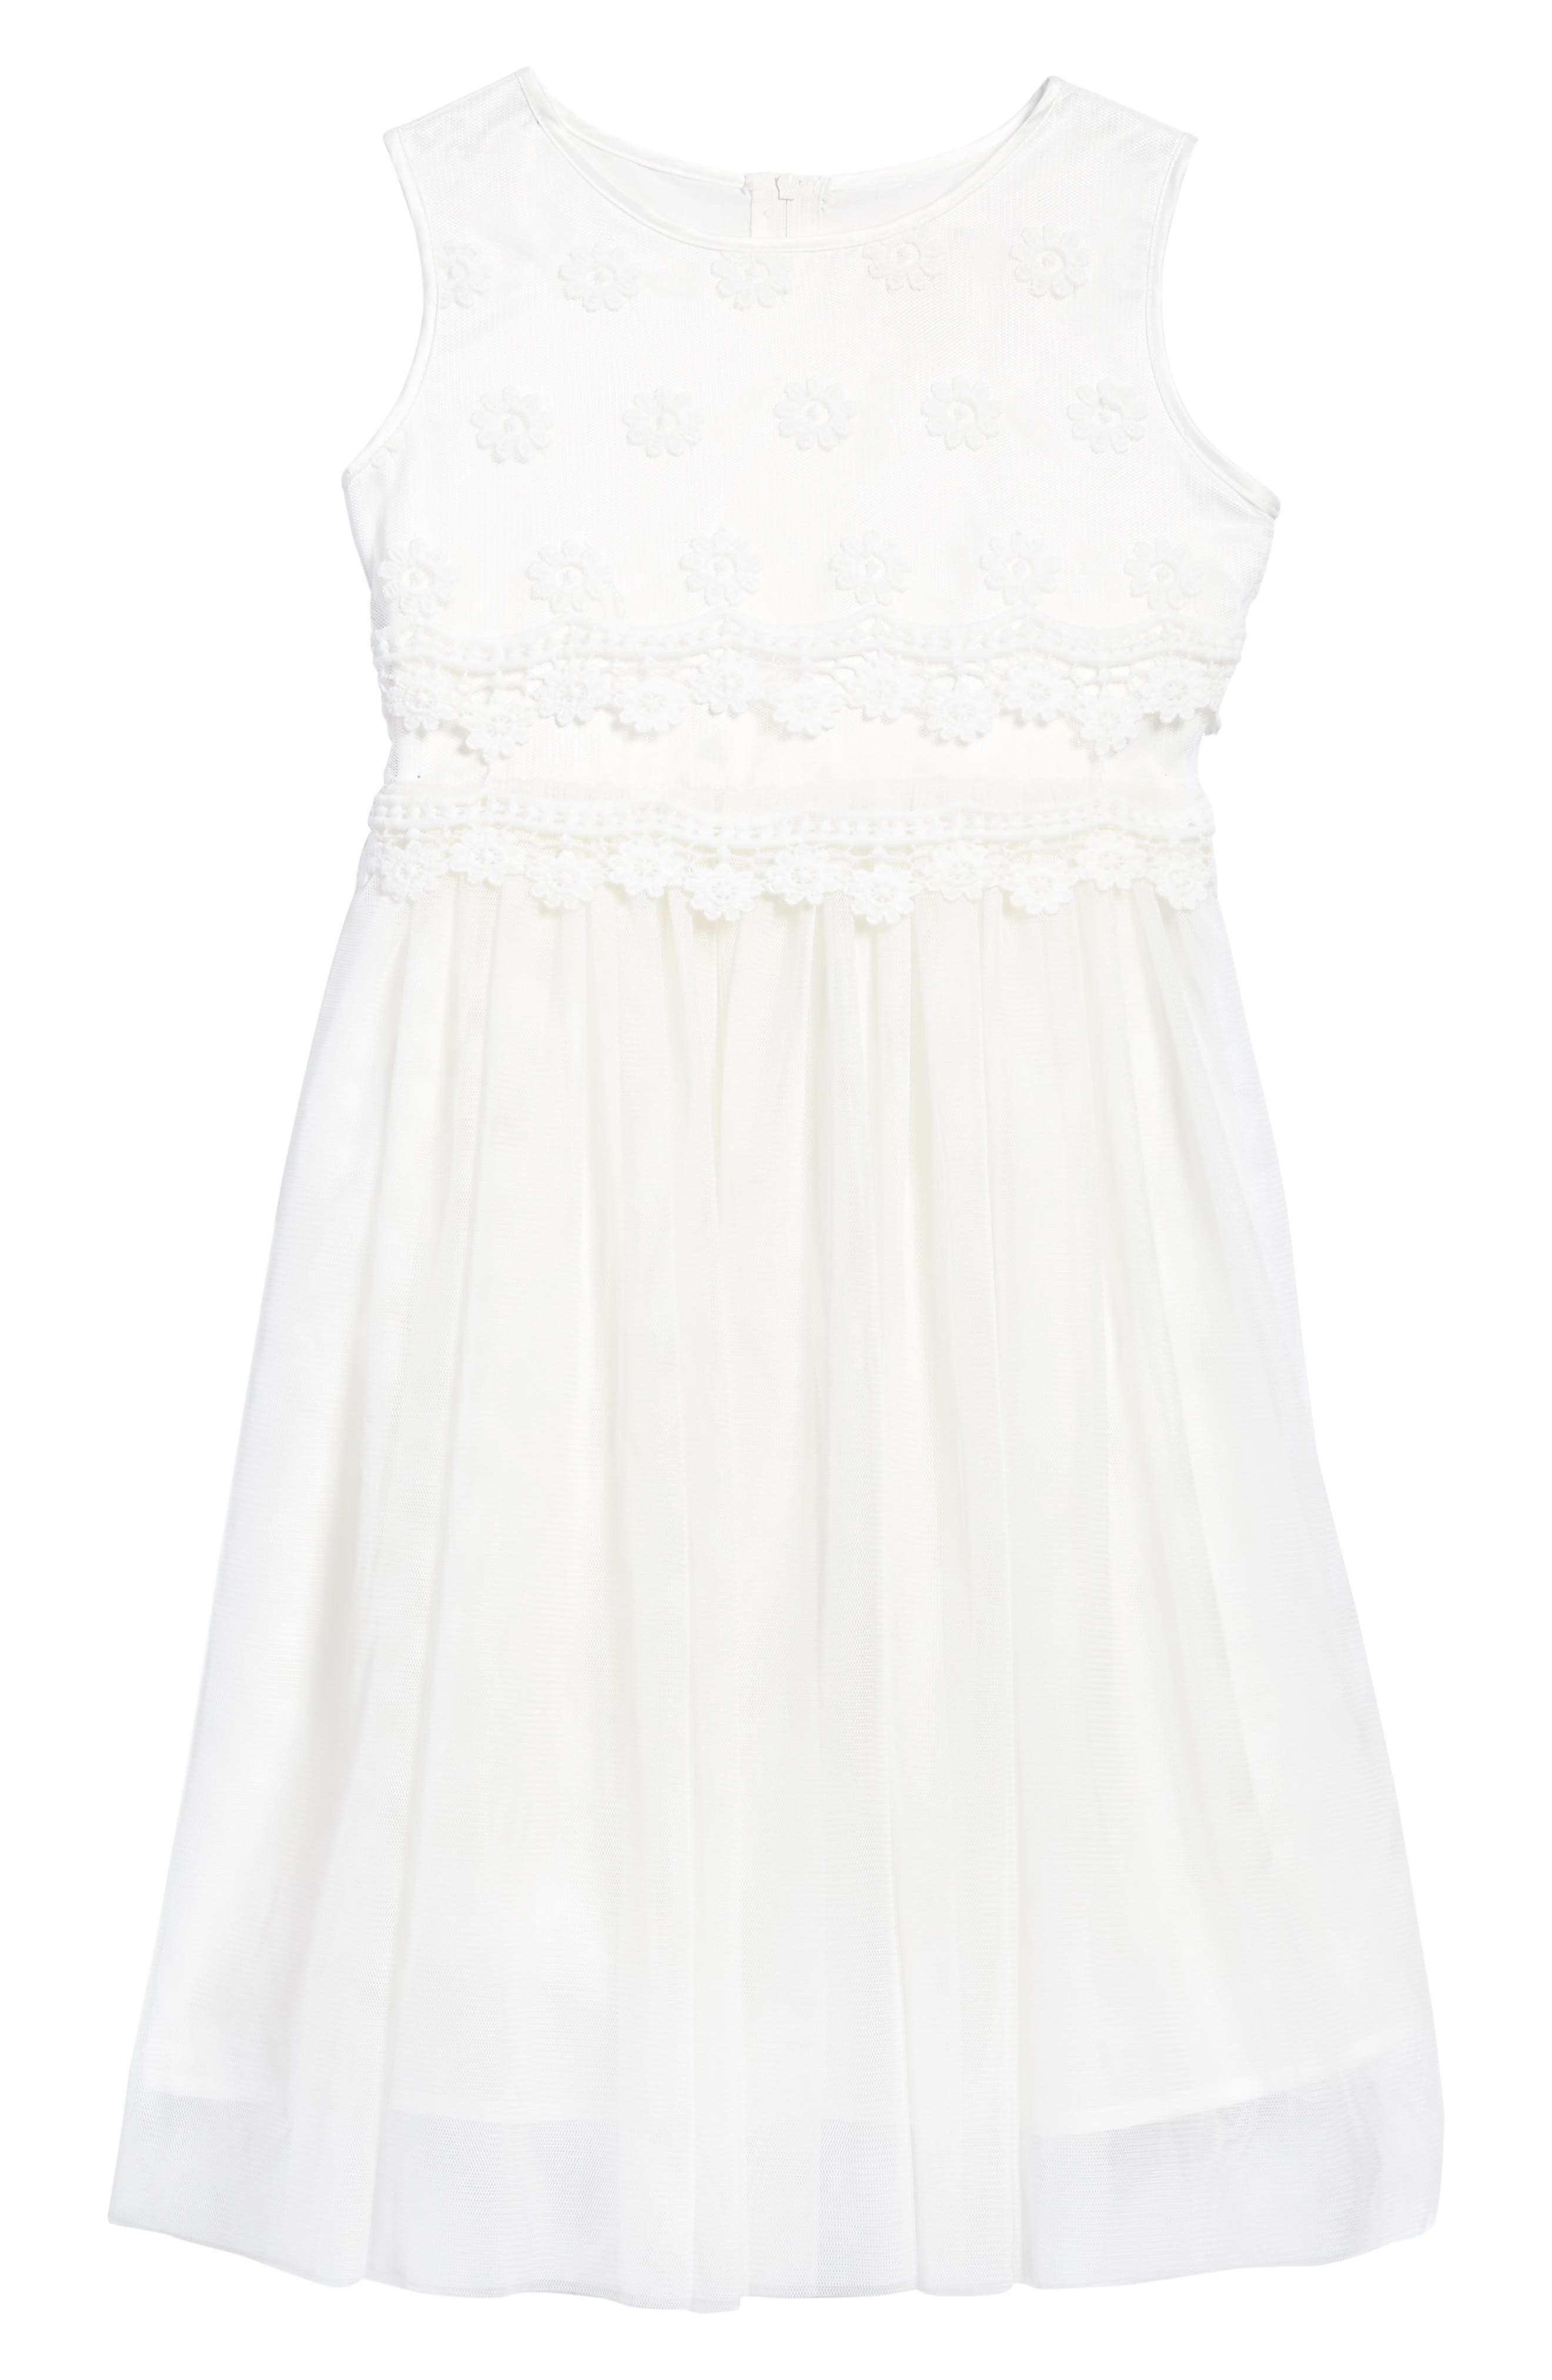 Popatu Daisy Tulle Dress (Toddler Girls, Little Girls & Big Girls)